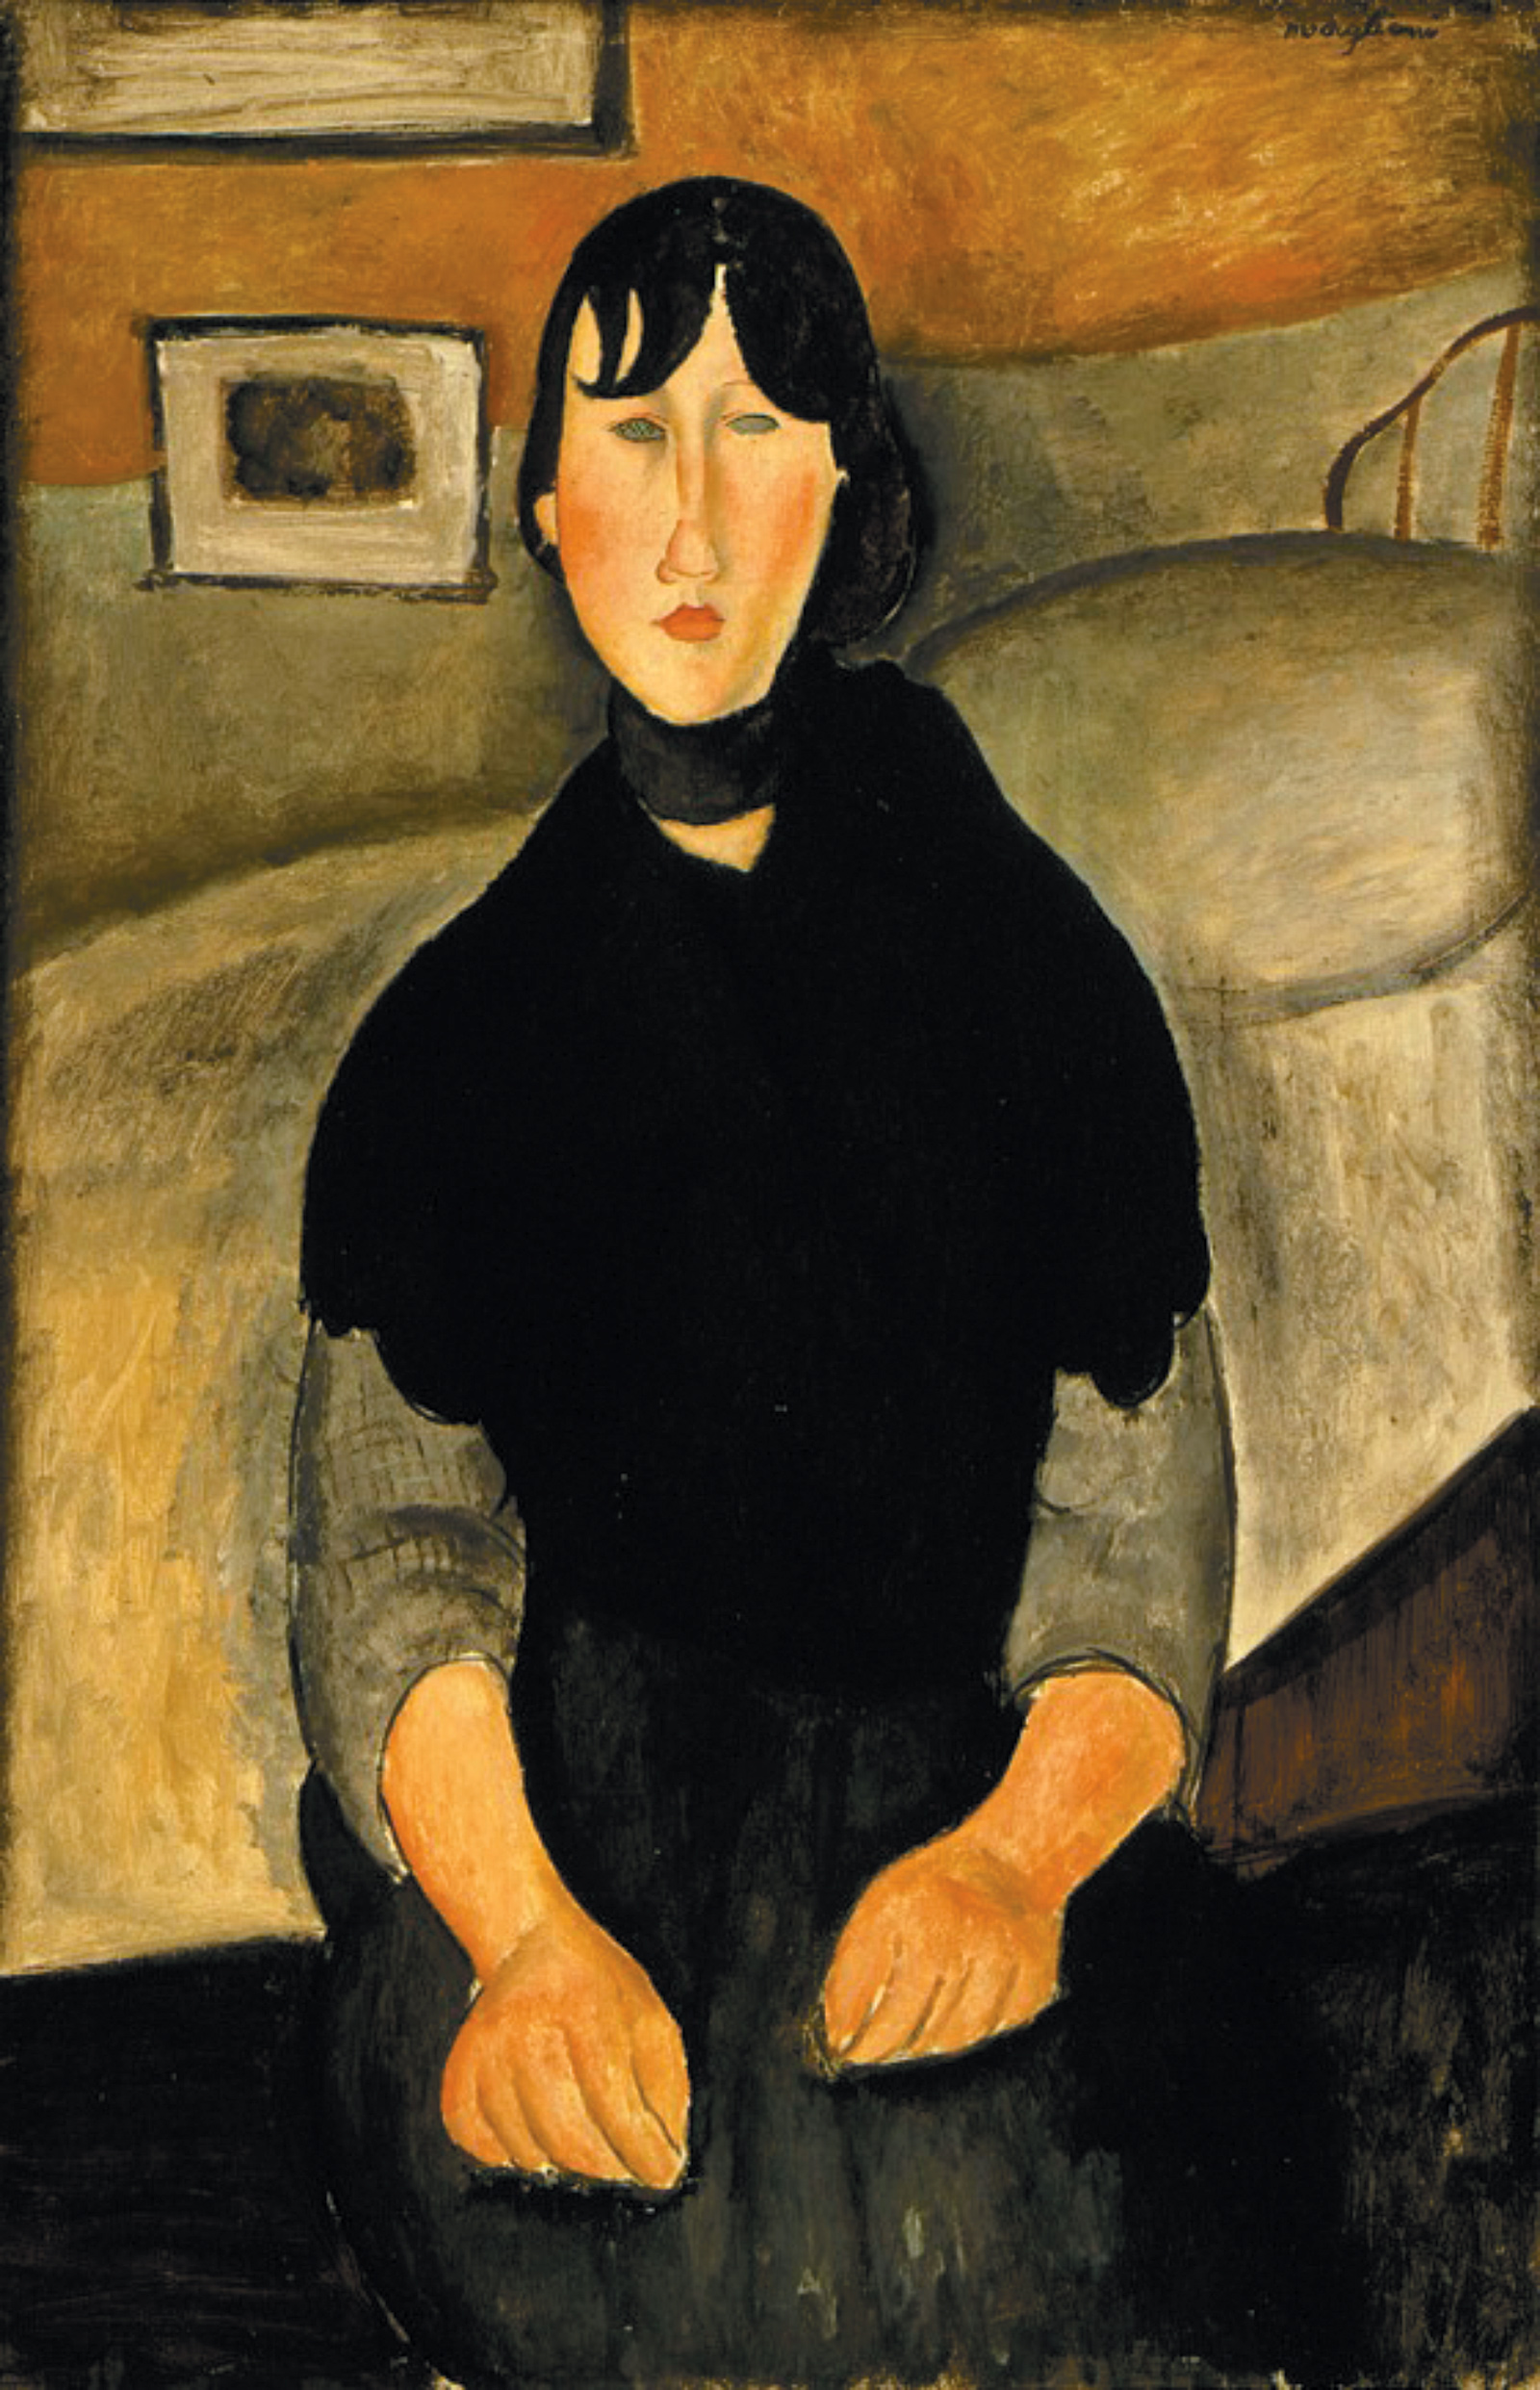 'Young Woman of the People'; painting by Amedeo Modigliani, 1918